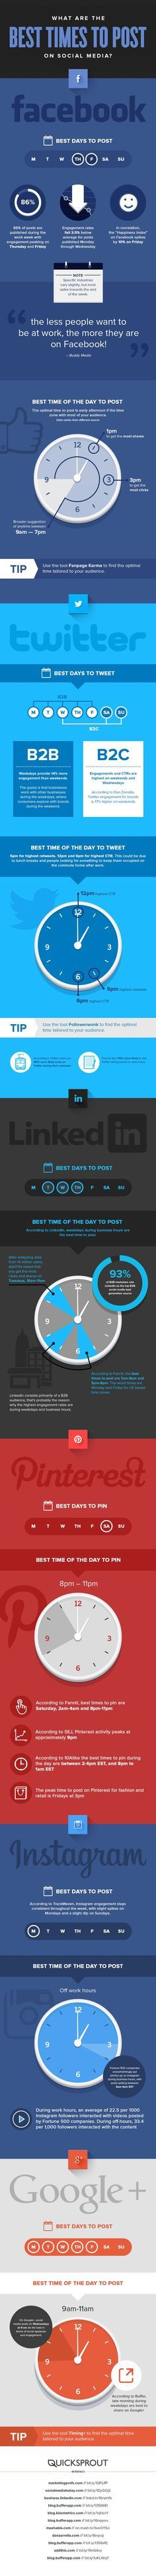 Great infographic showing the best times to post on social media in 2015